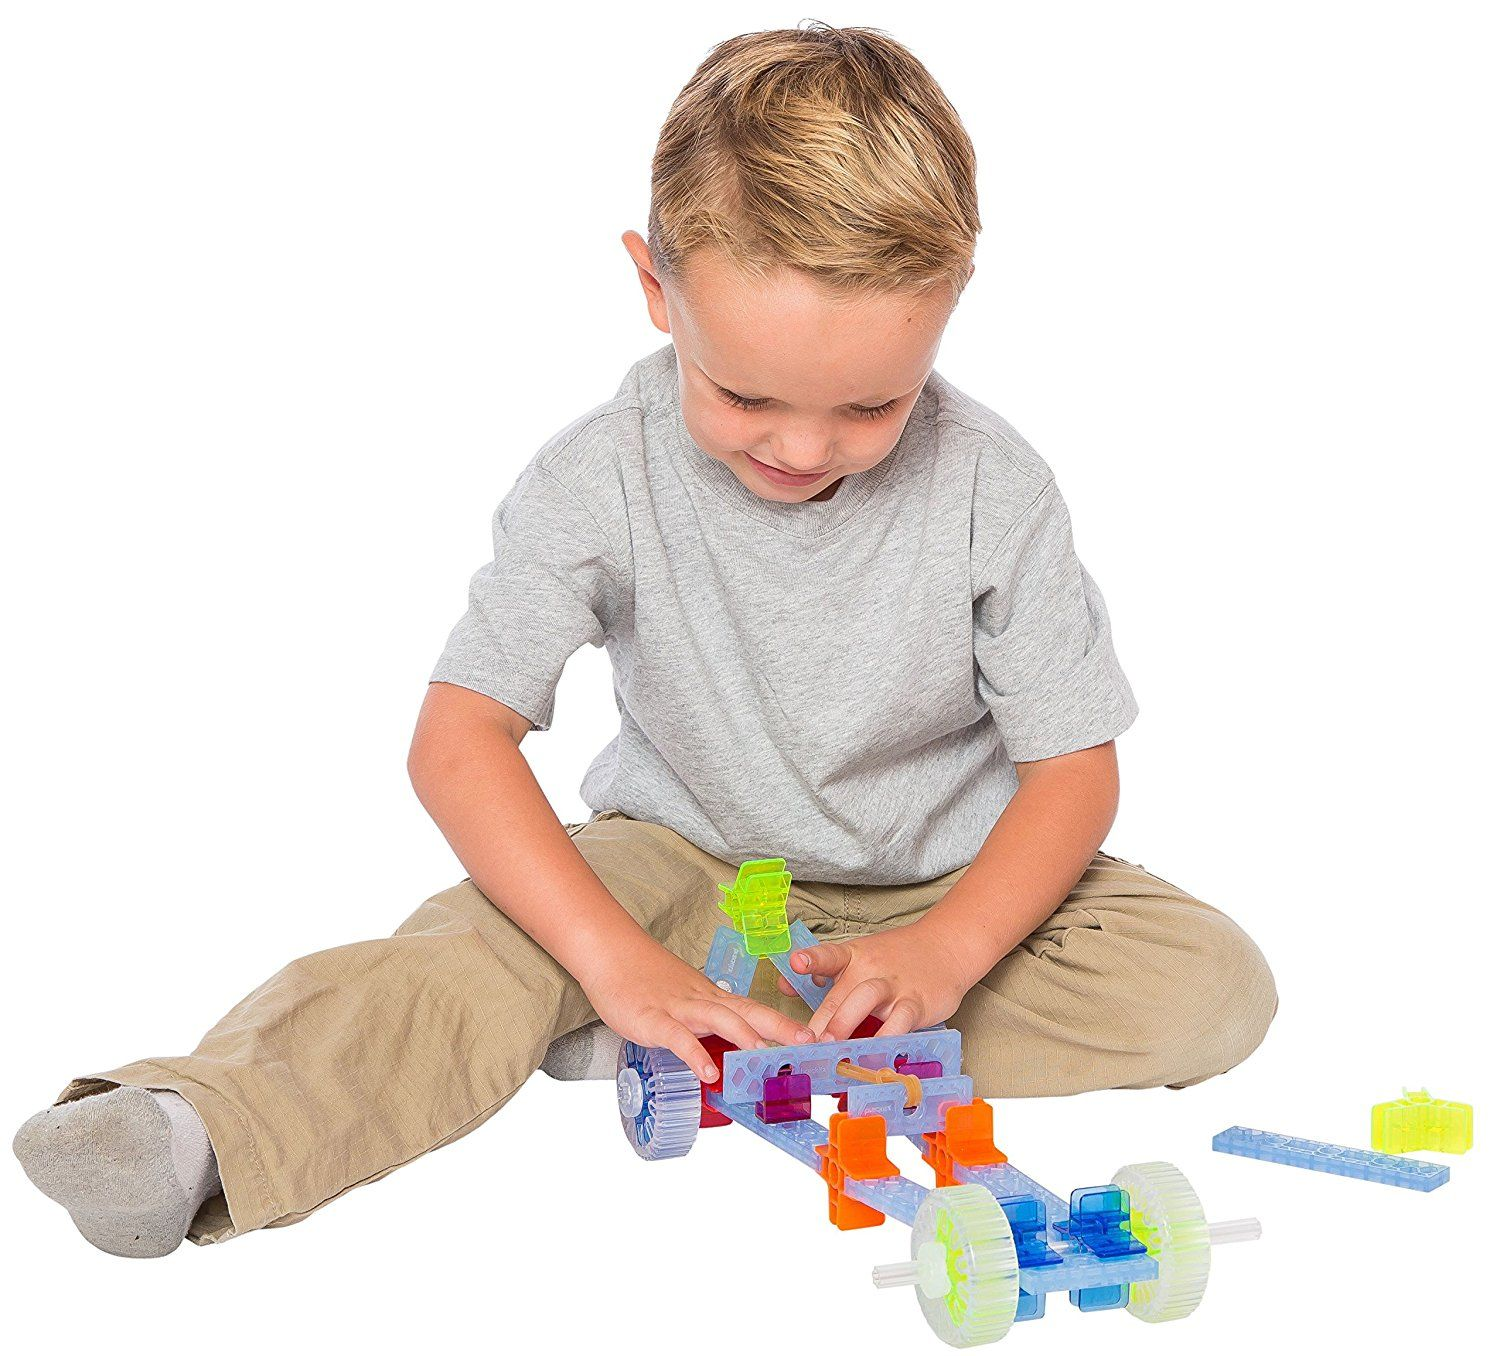 Brackits Driver Set. Unleash your child's unlimited potential with award-winning Brackitz! Brackitz is a toy that encourages children to create, invent, and, experiment. Unlike other building toys, Brackitz' unique connect-anywhere system allows builders of all ages to design and construct any structure they imagine.